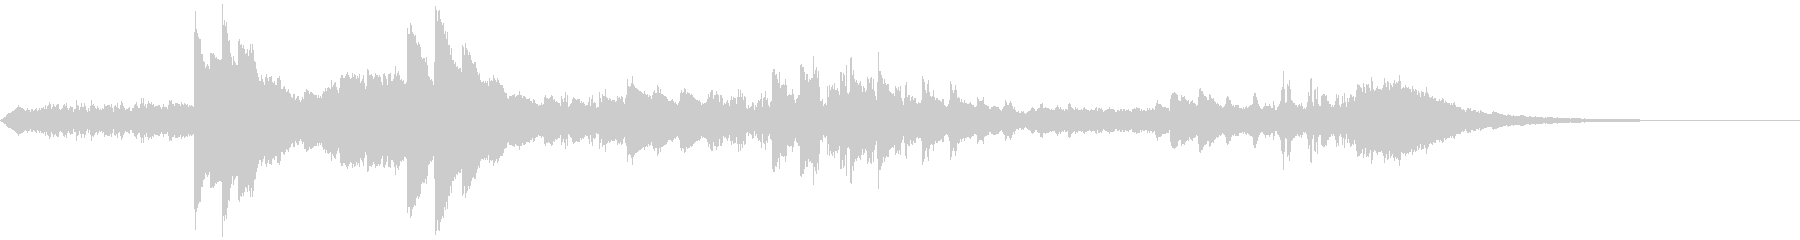 Wawa Cauppyan (the universe is a mystery 1)'s unreproduced waveform